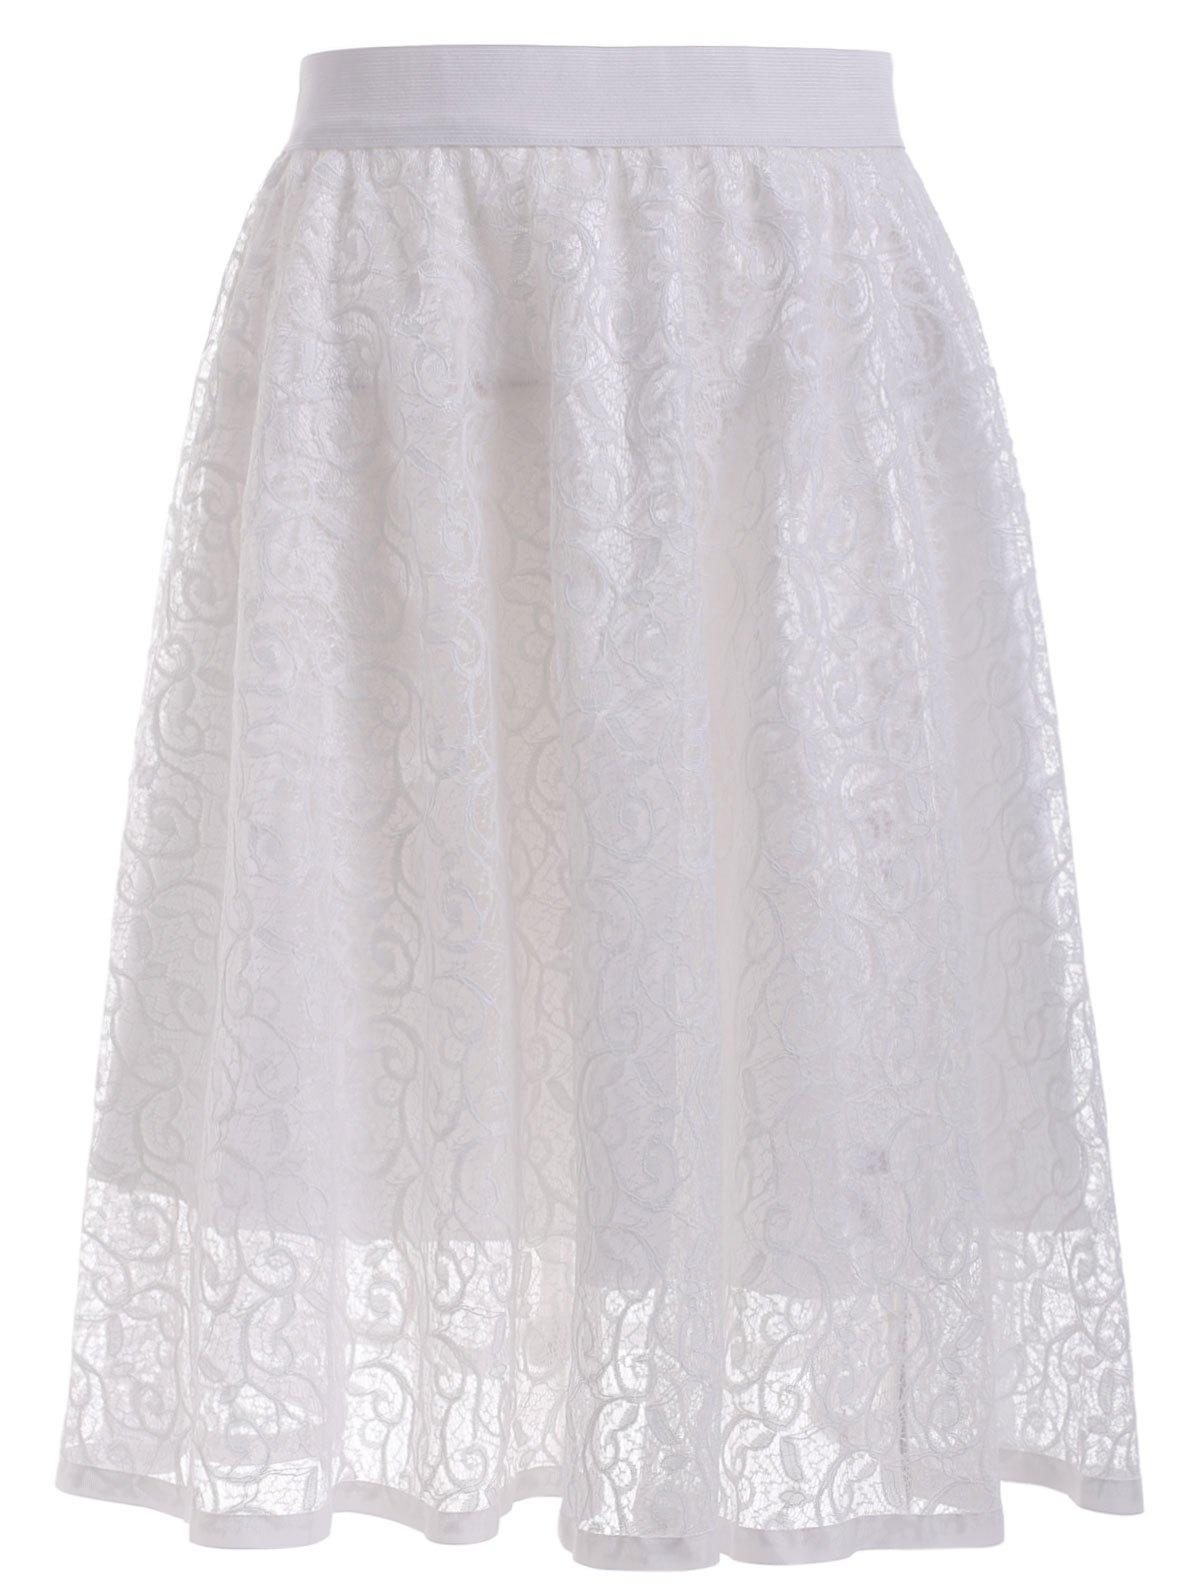 Vintage Pure Color See-Through Lace A Line Skirt